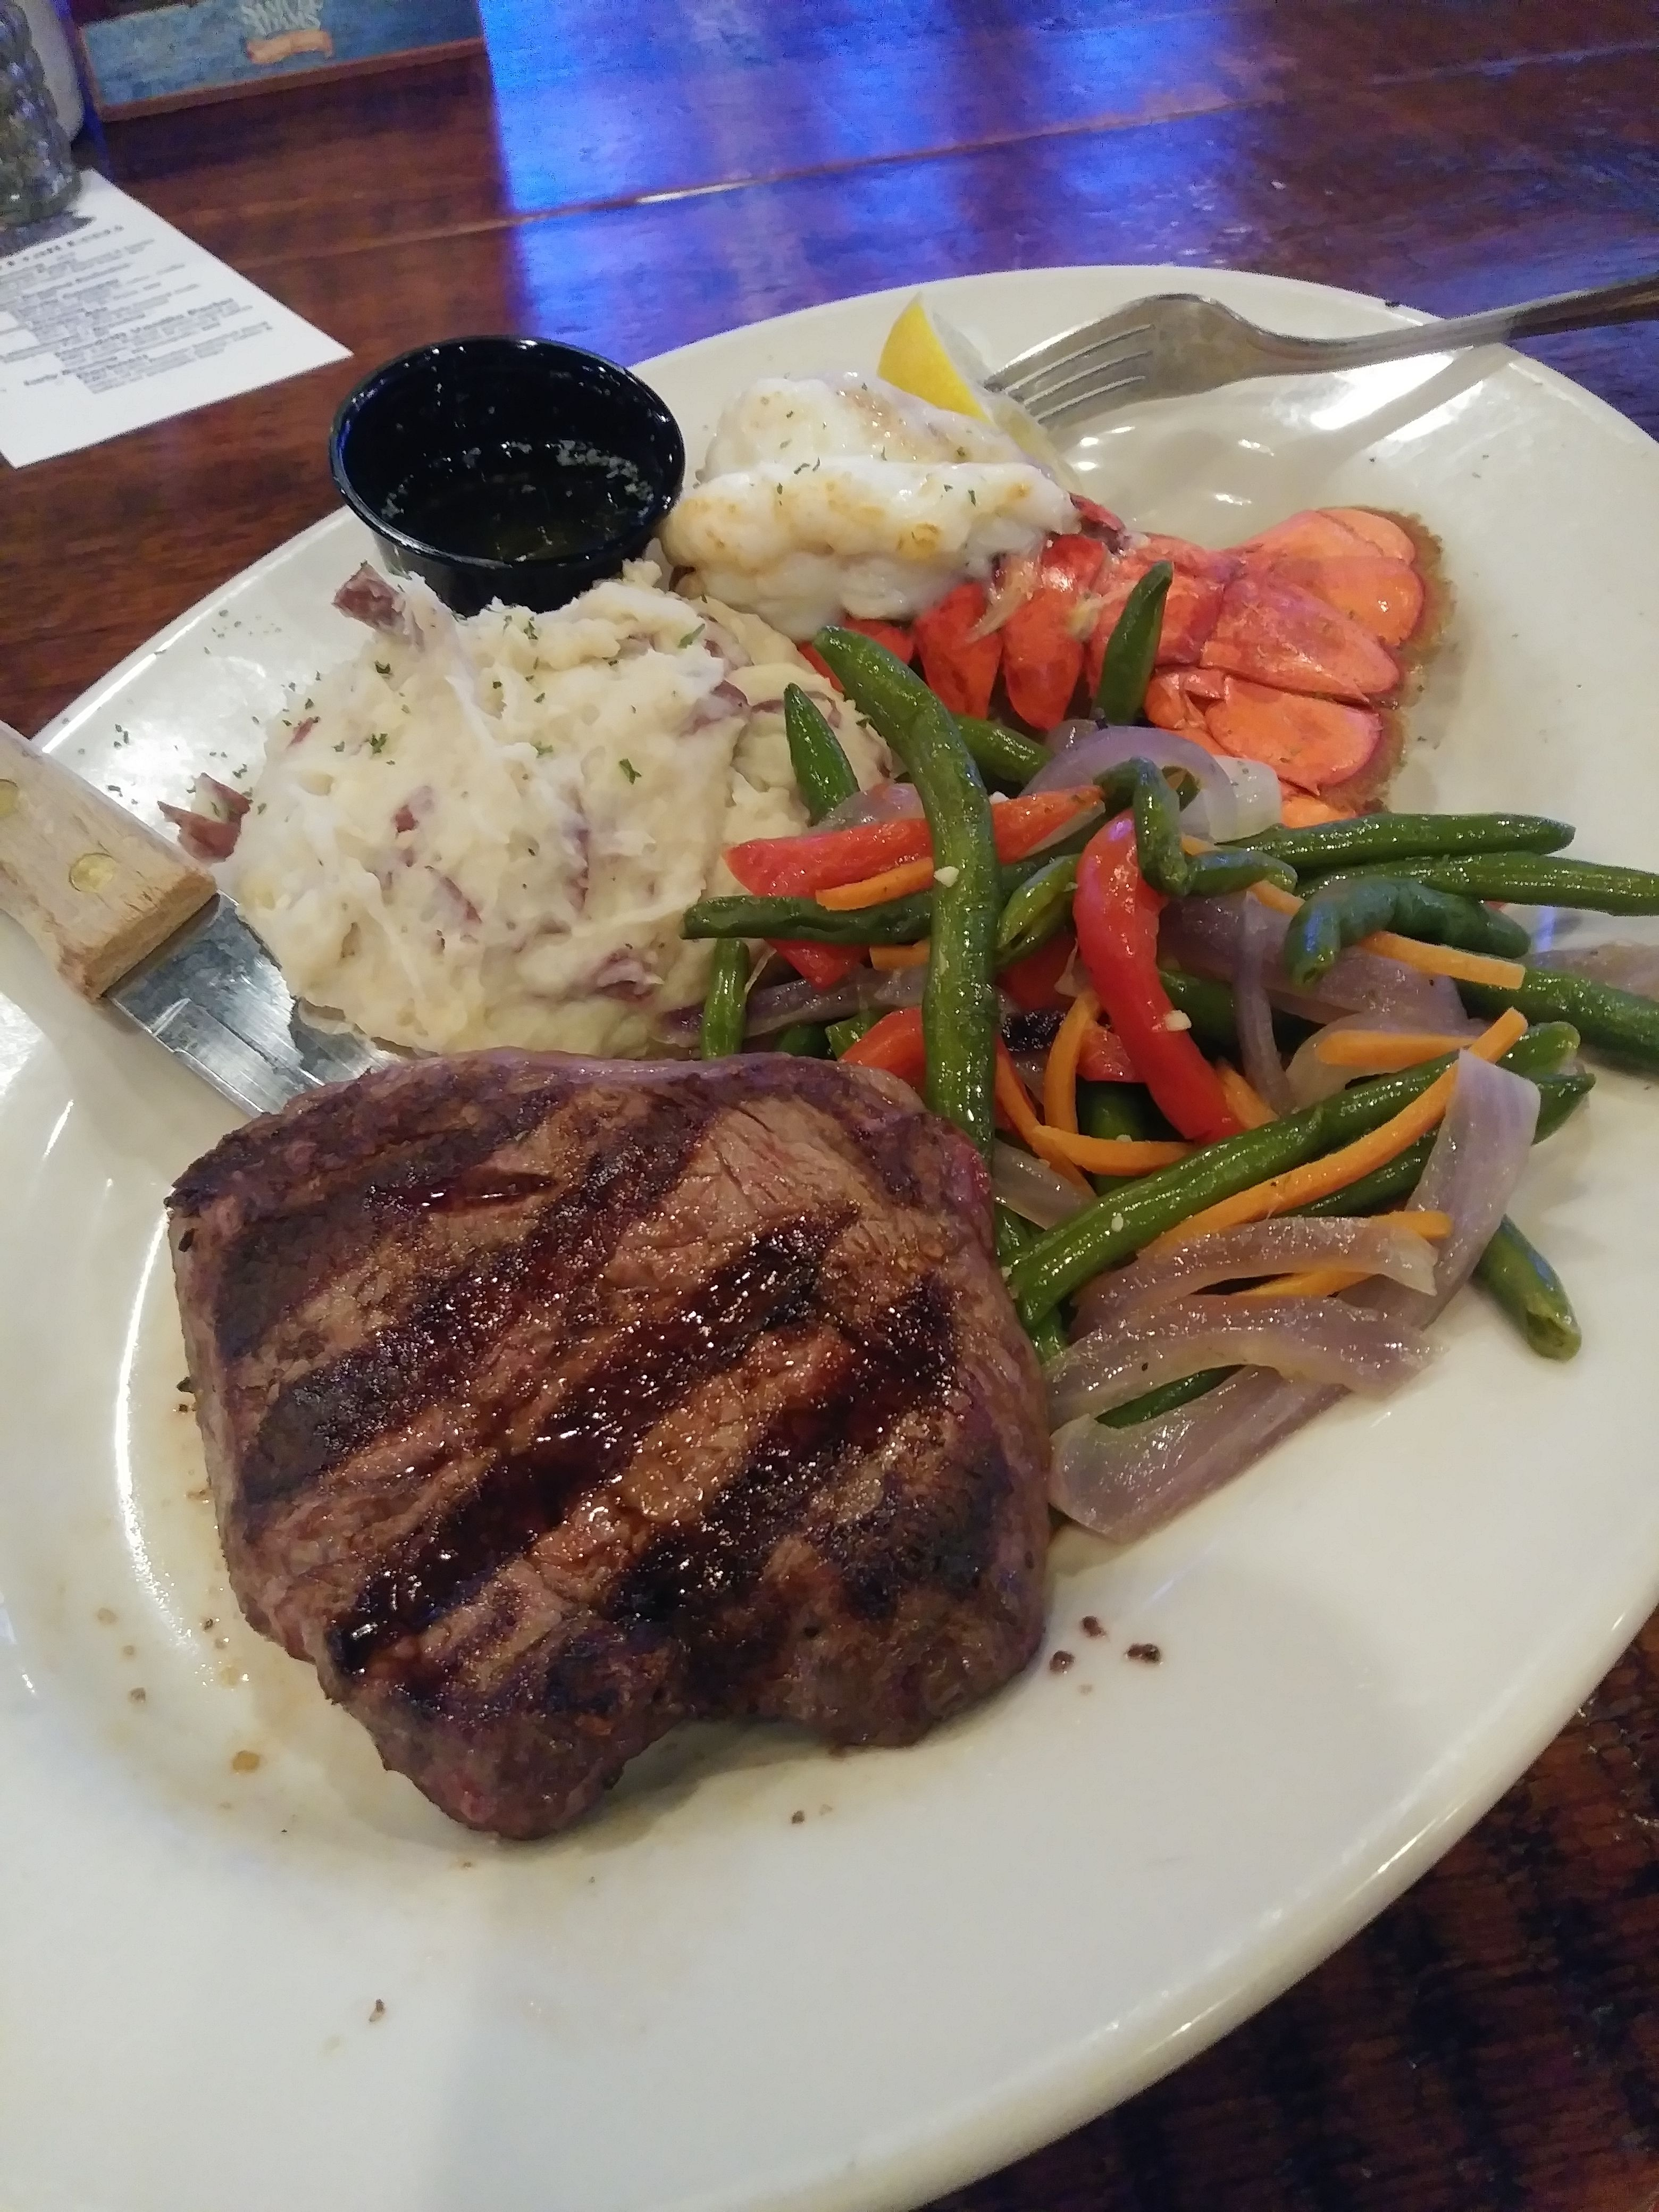 Tonight's special is a Steak and Lobster Dinner! #Food # ...